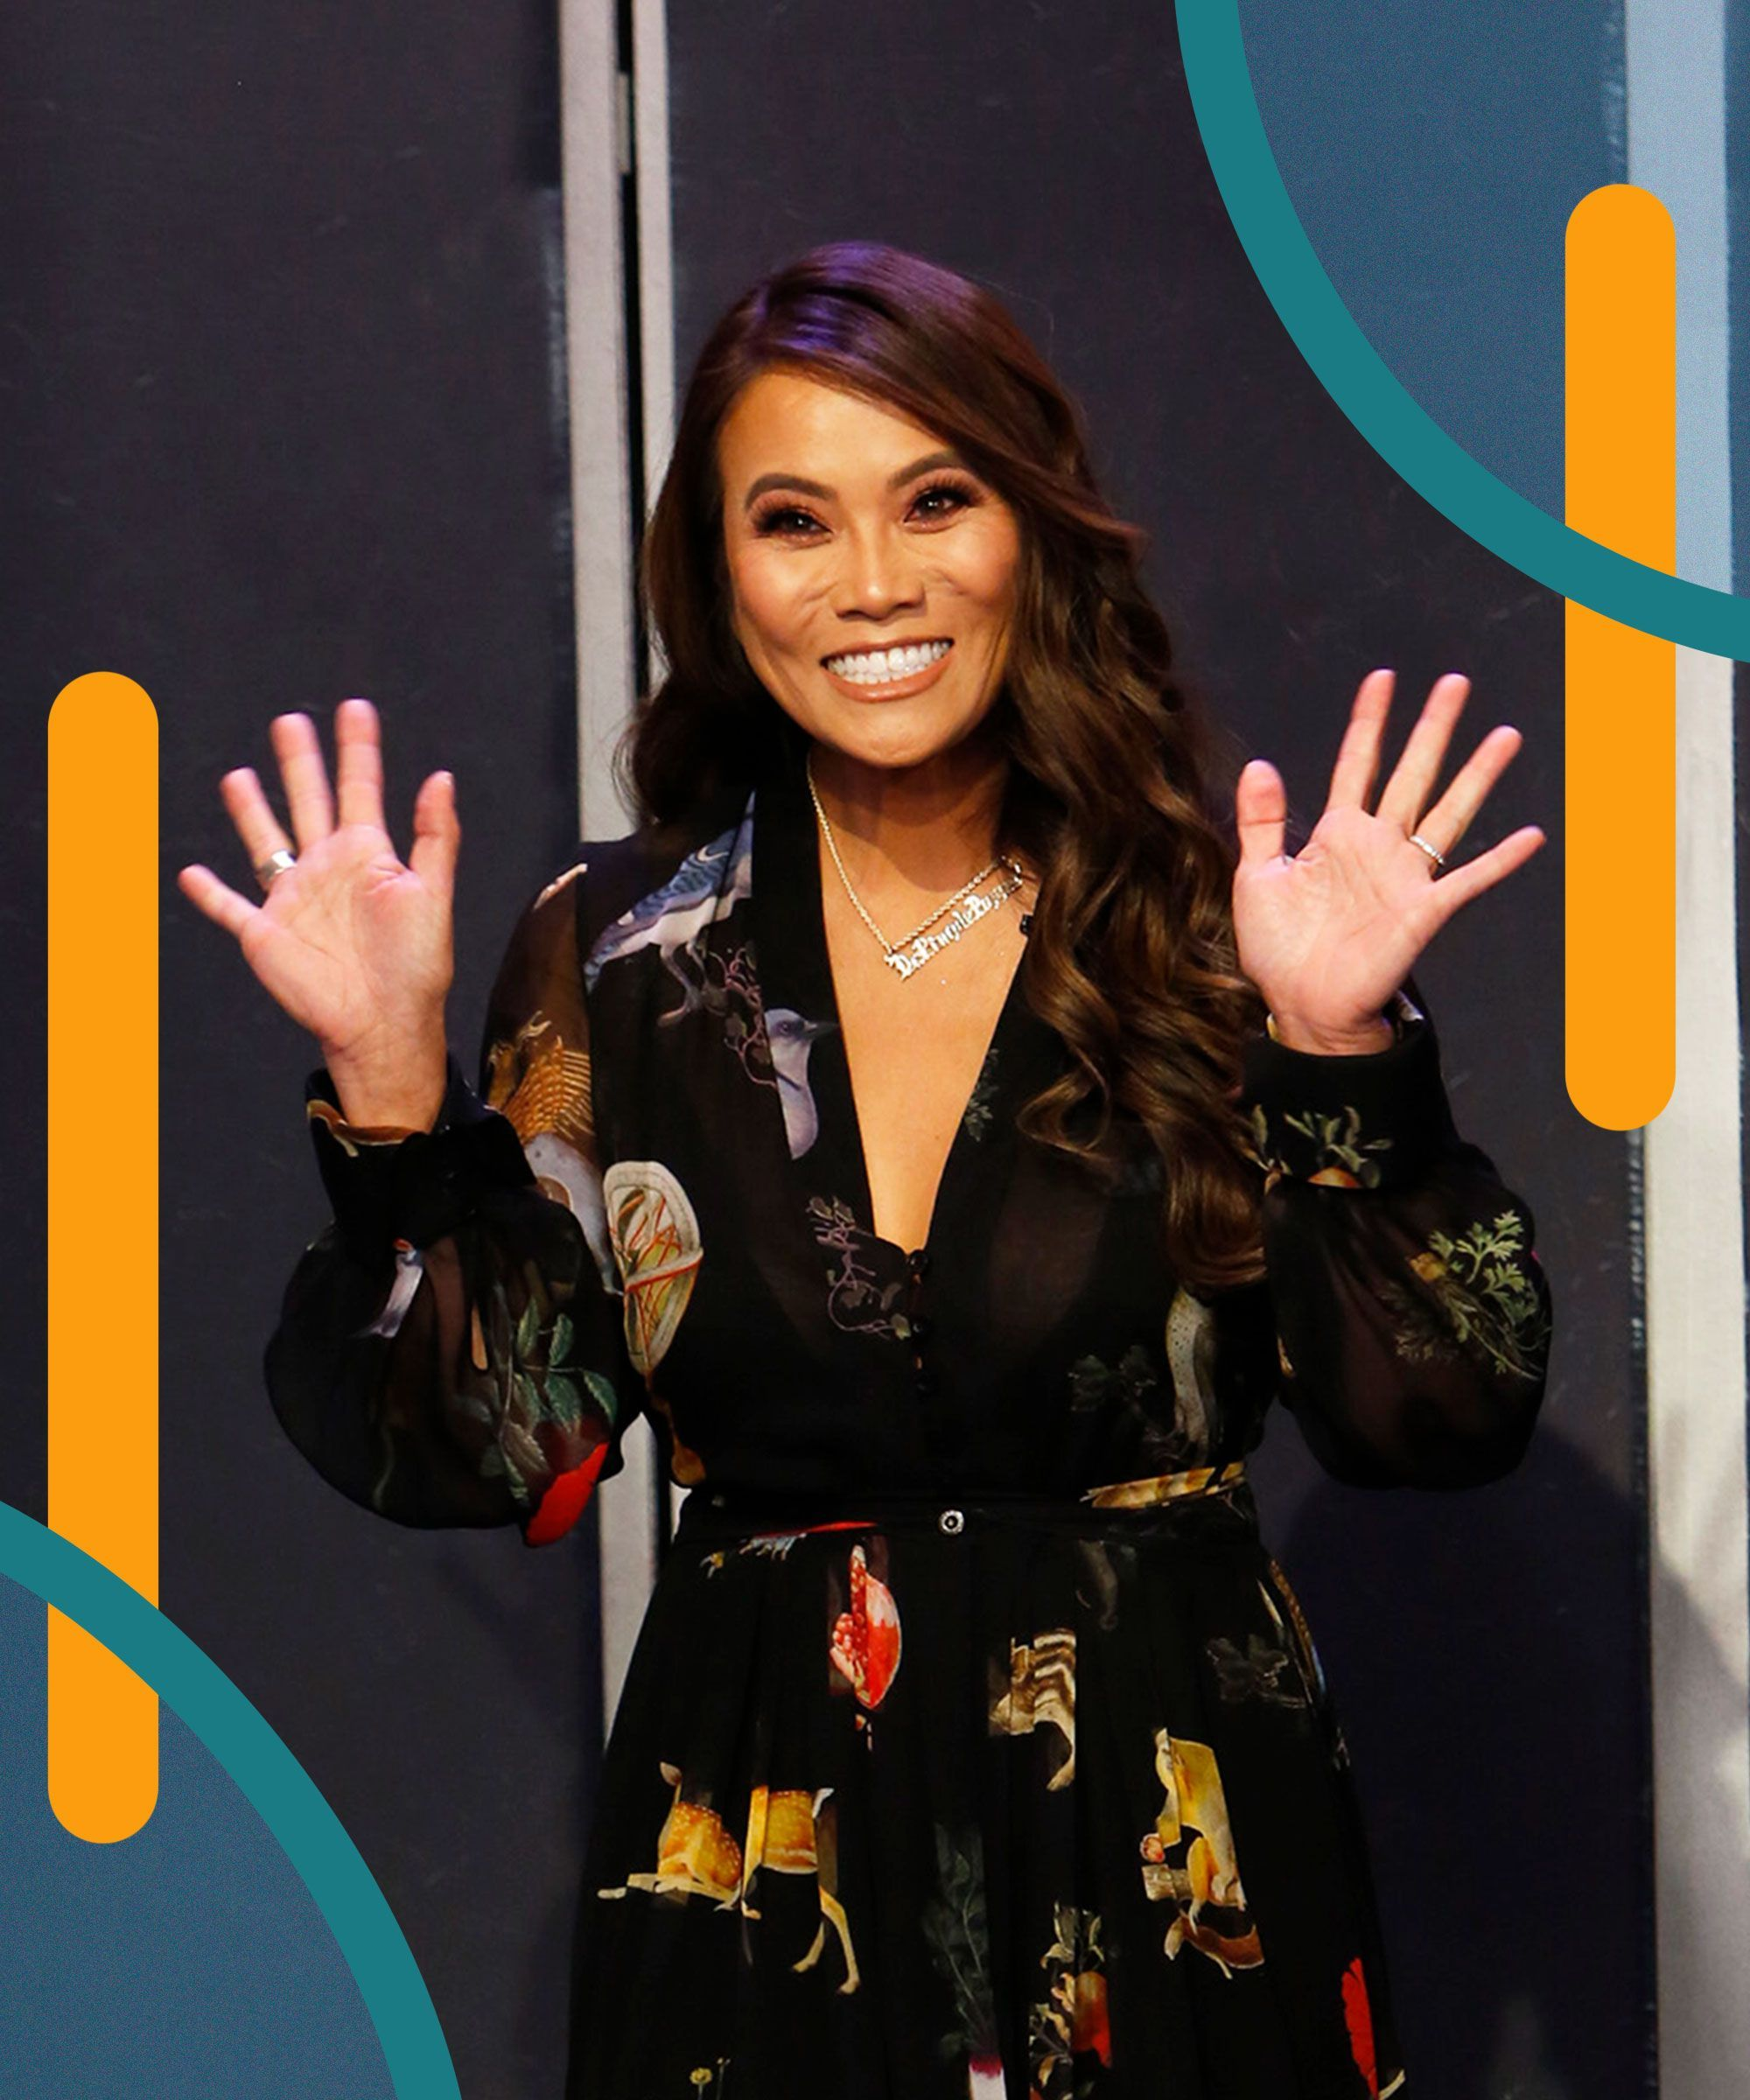 Dr  Pimple Popper Says This Is The Most Intense Surgery She's